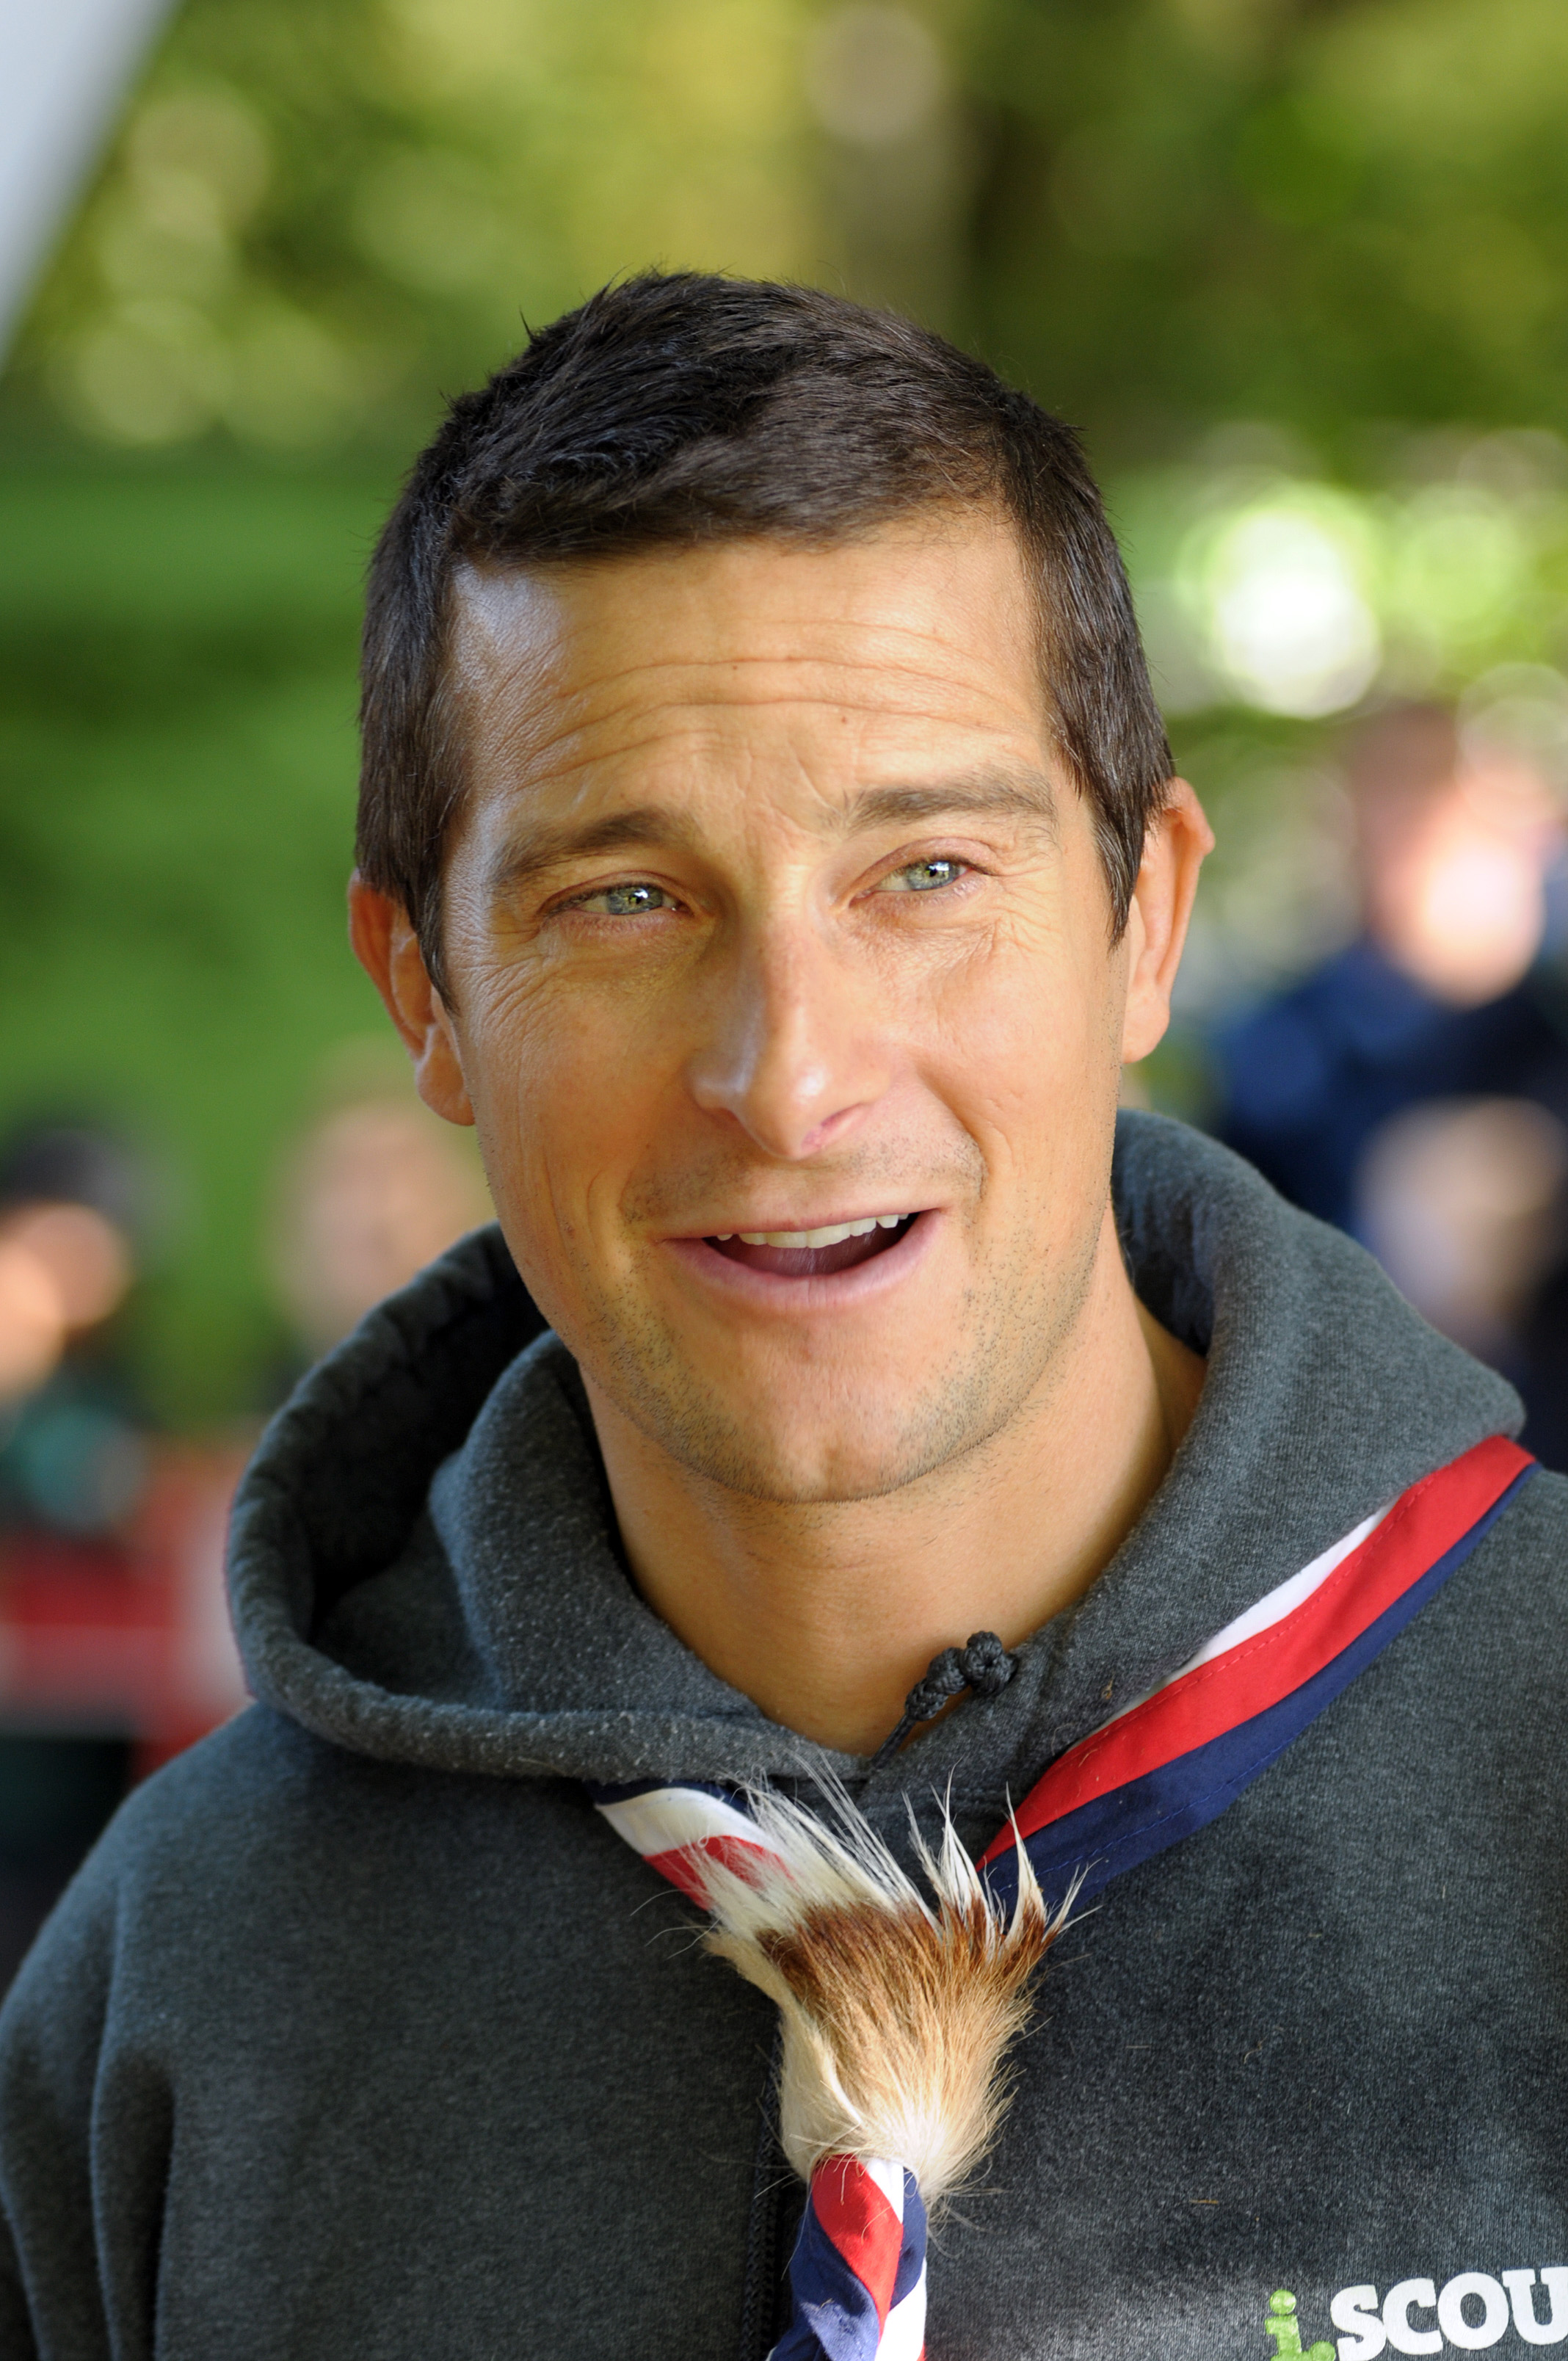 Bear Grylls meeting with Coventry Scouts groups, October 2012